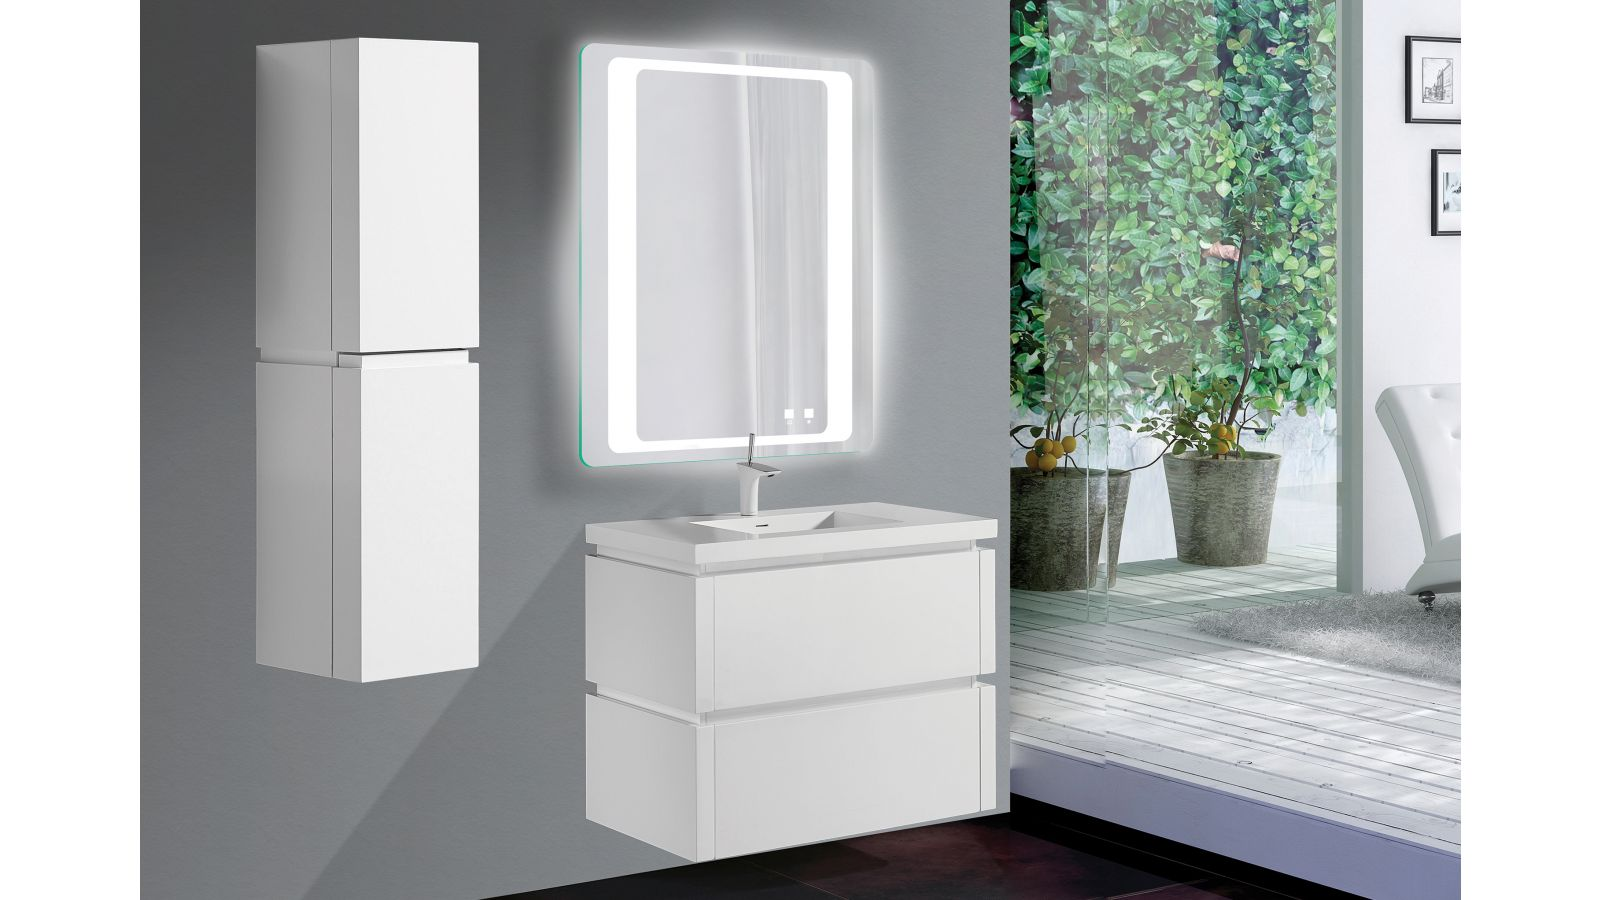 The Vision Illuminated Slique™ Mirror Collection